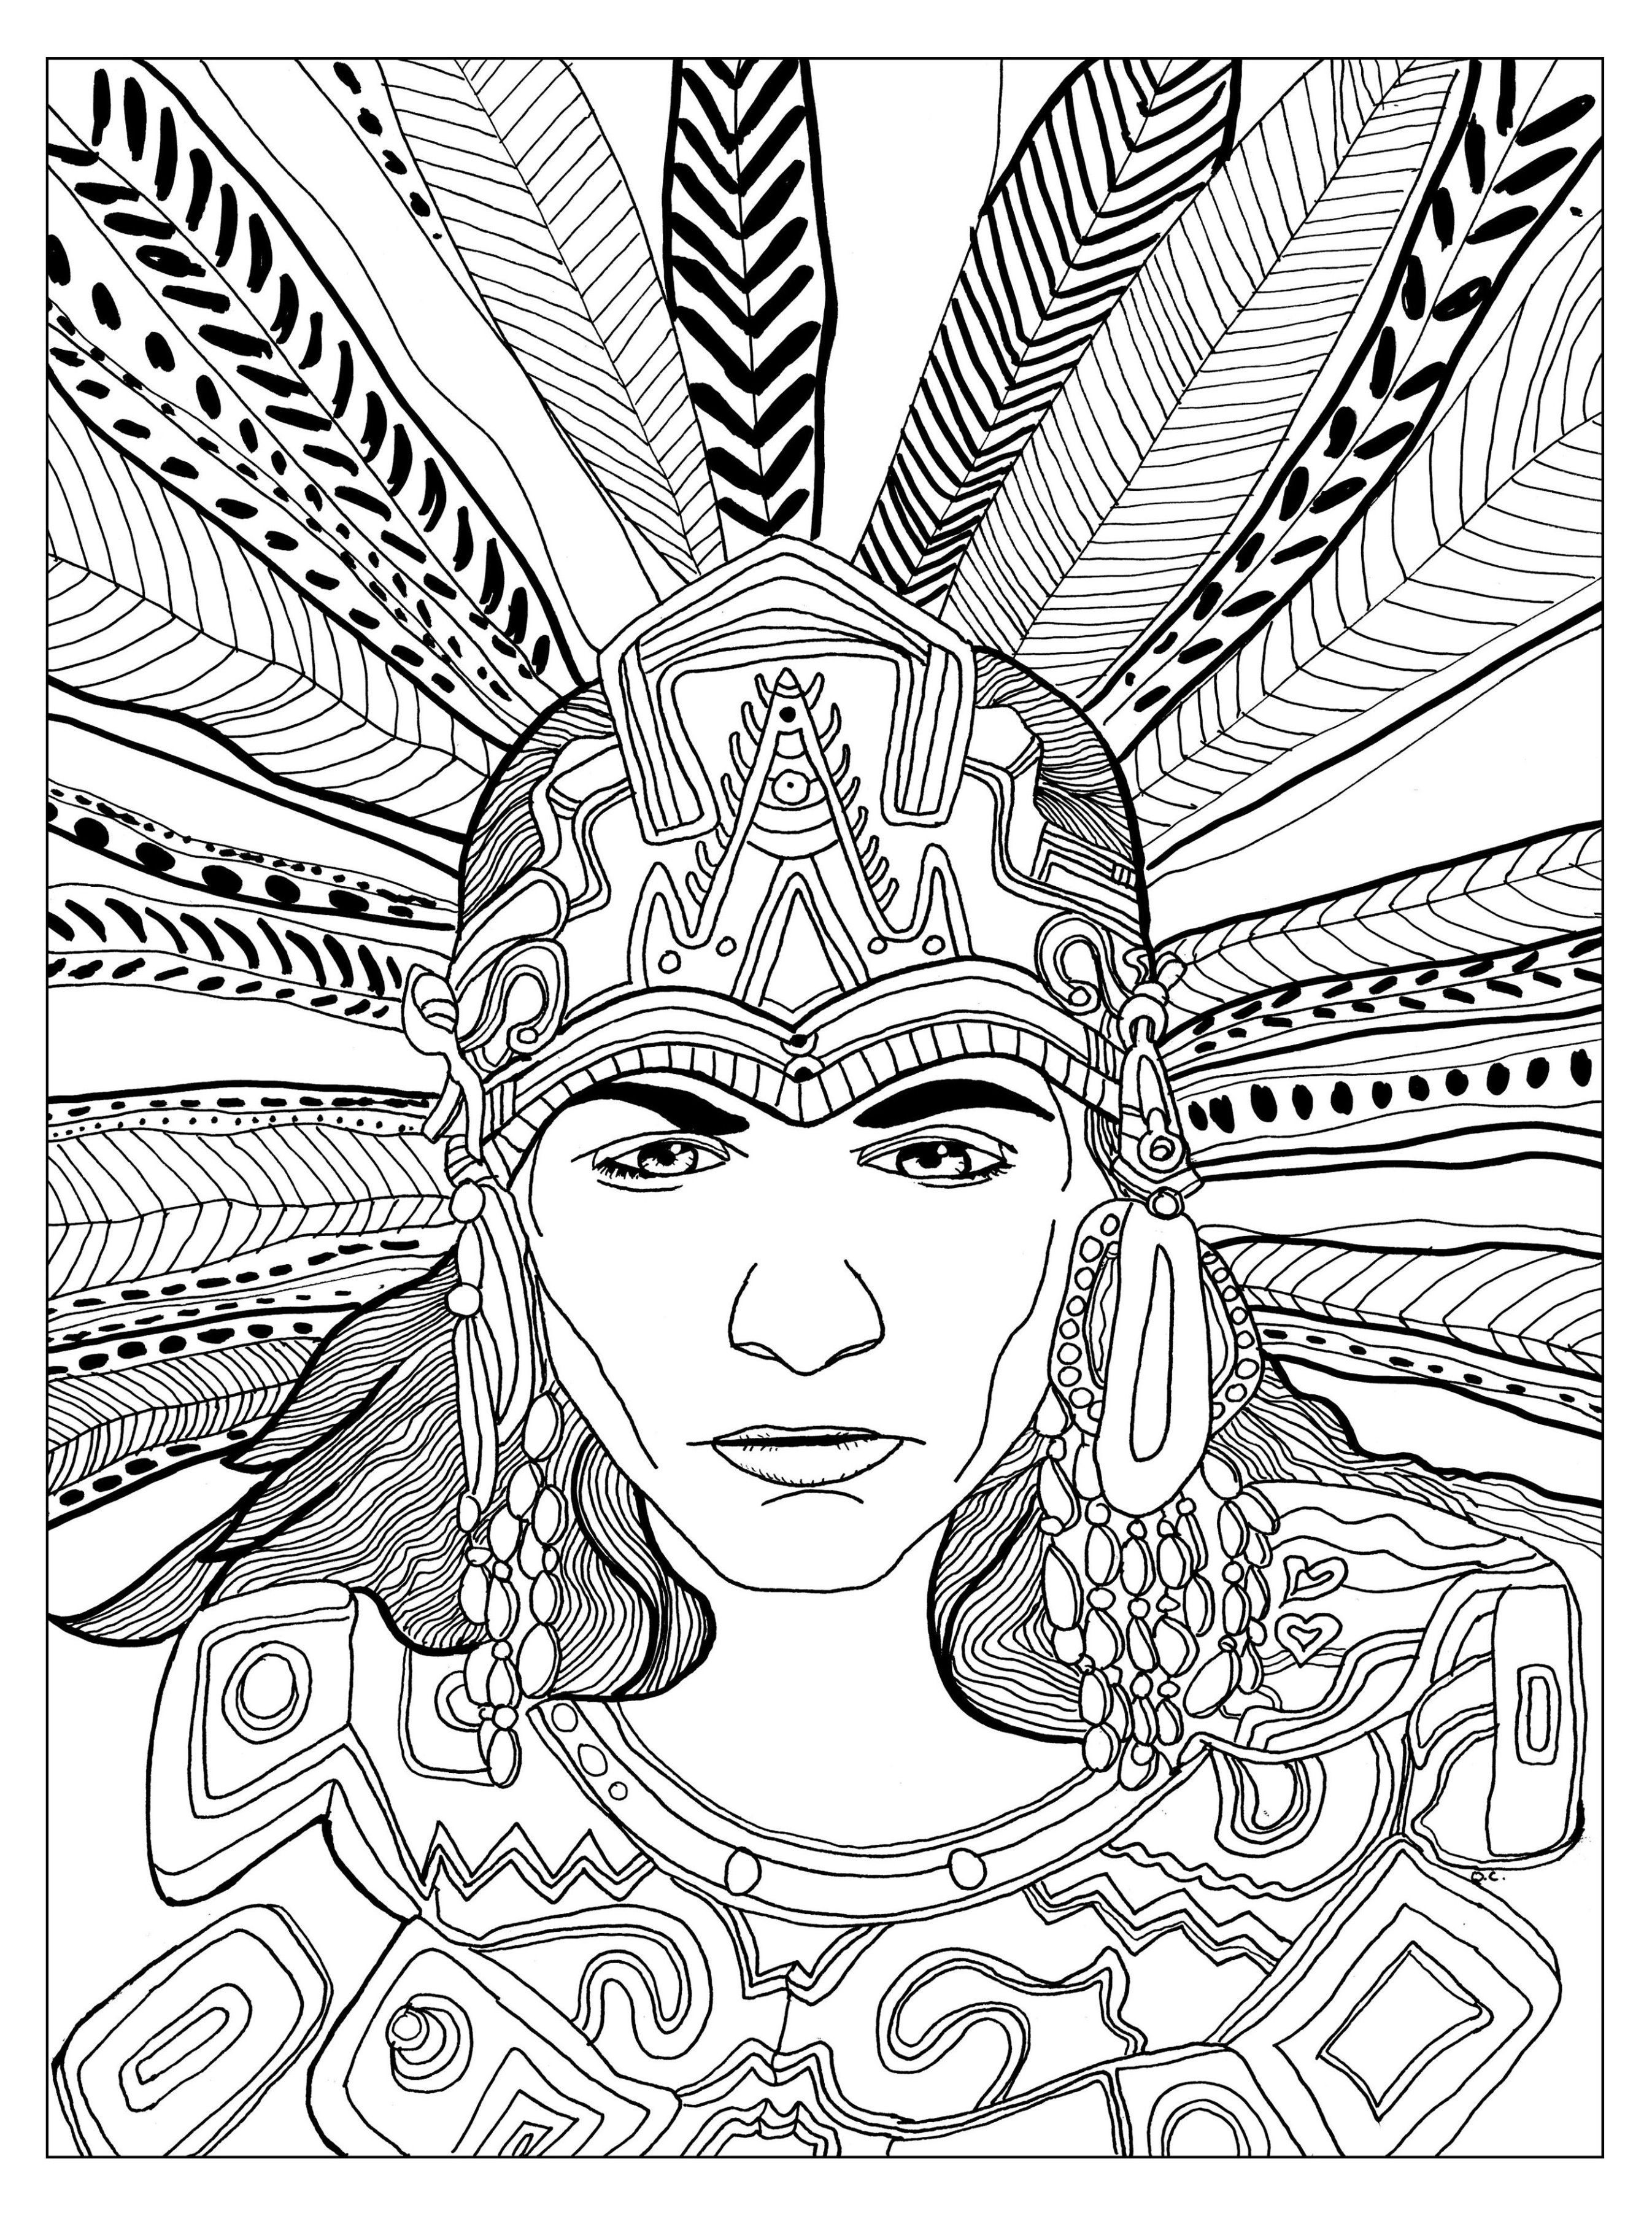 Free coloring page coloring-adult-chief-mayan-by-olivier. A great ...